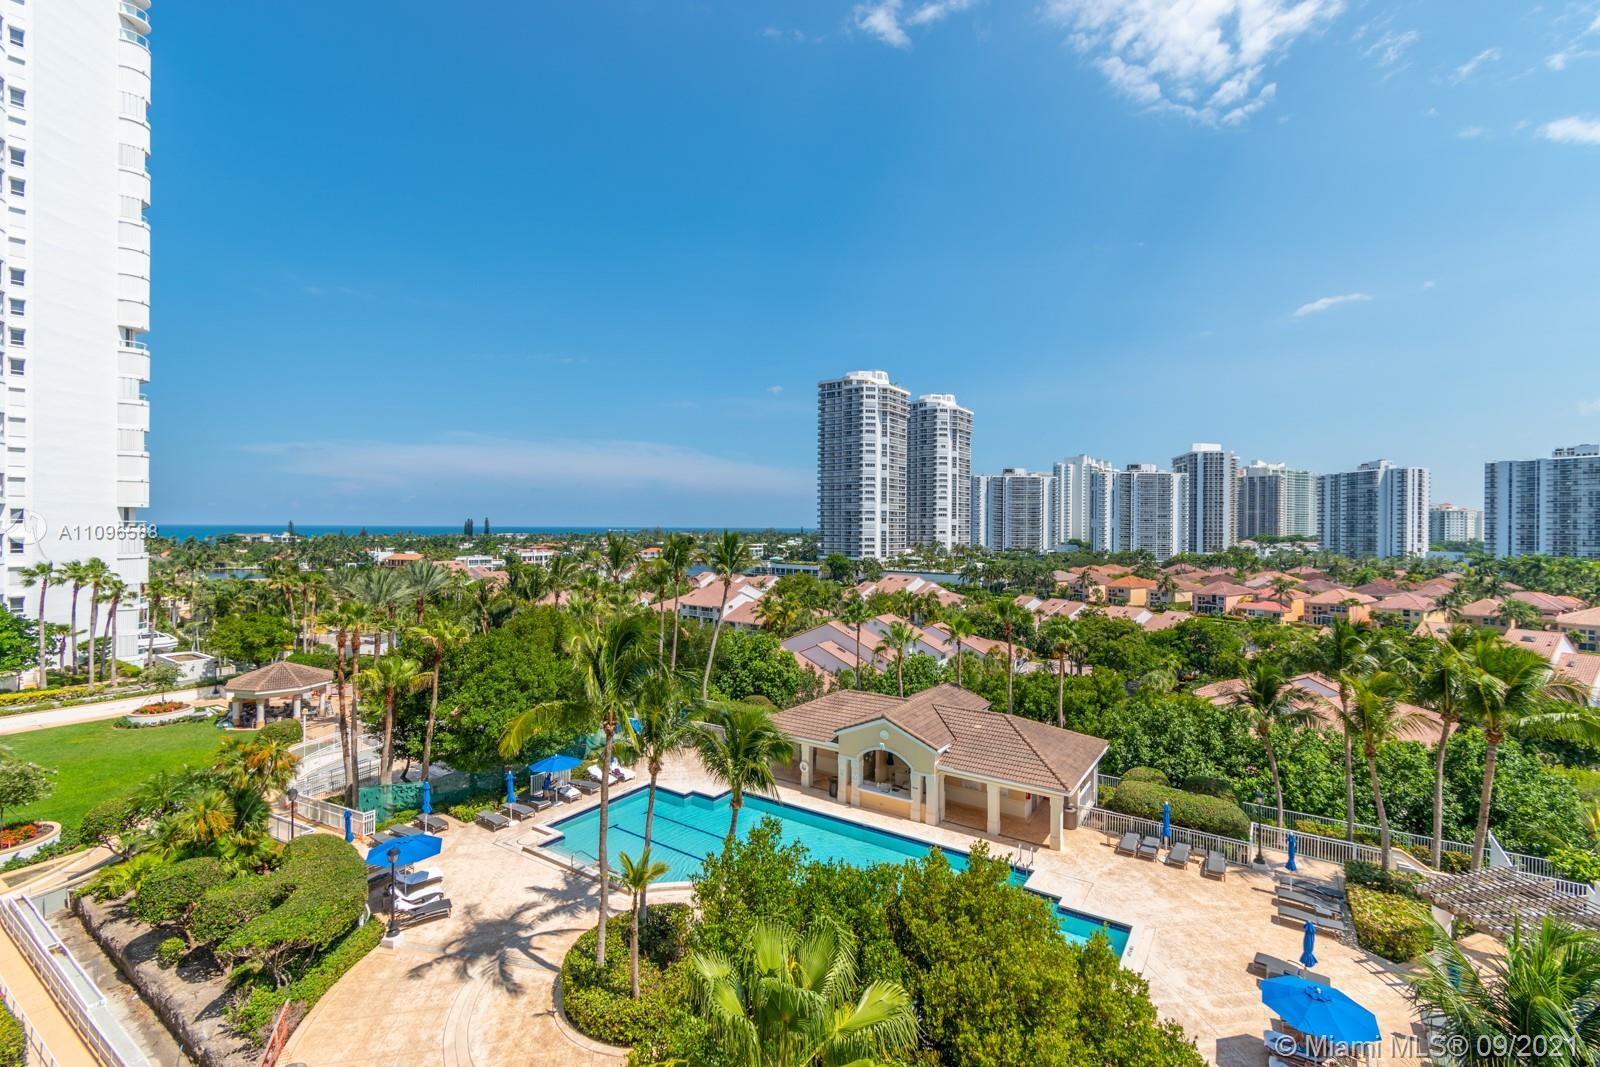 **BEST LINE IN THE BUILDING** BEAUTIFUL 3 BED 2 BATH WITH AMAZING INTRACOASTAL AND OCEAN VIEWS. MARB